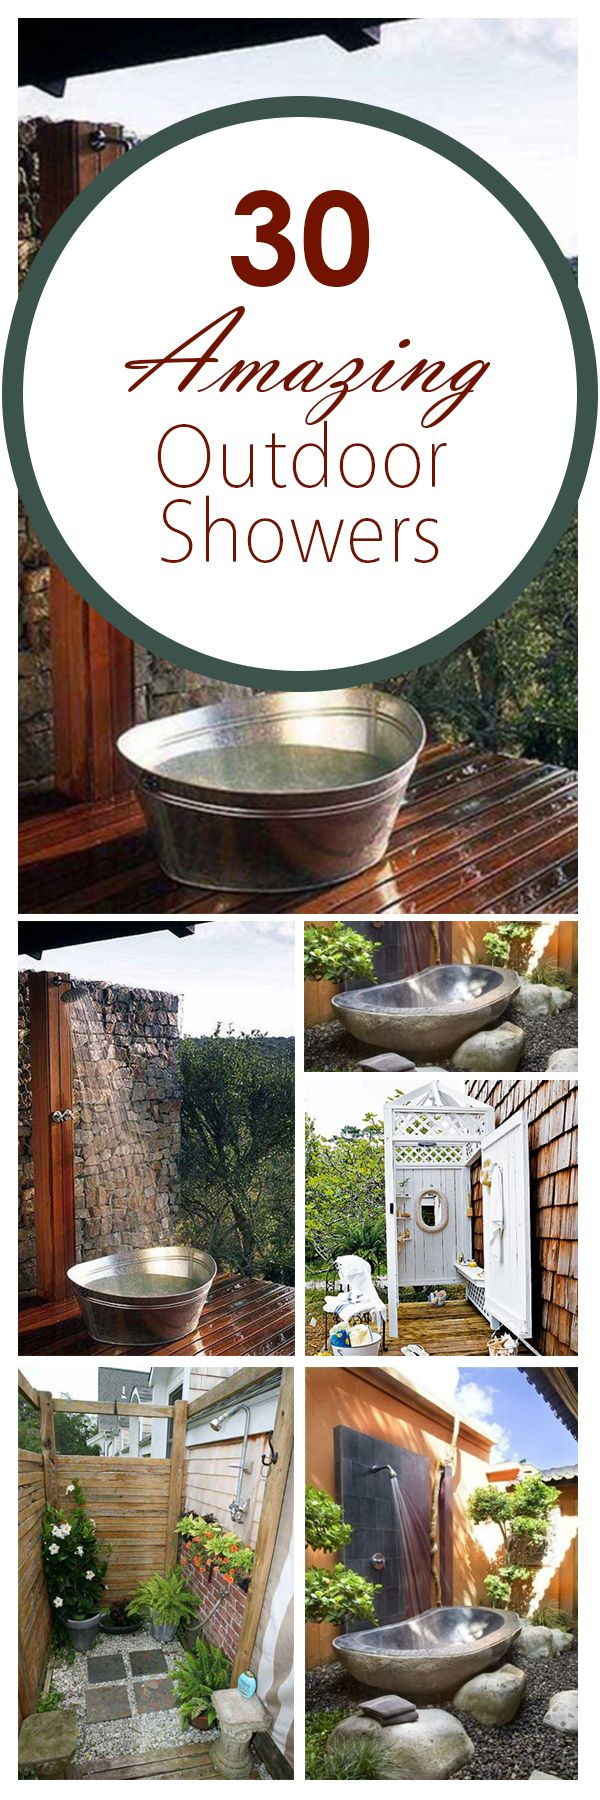 30 Amazing Outdoor Showers                                                                                                                                                                                 More